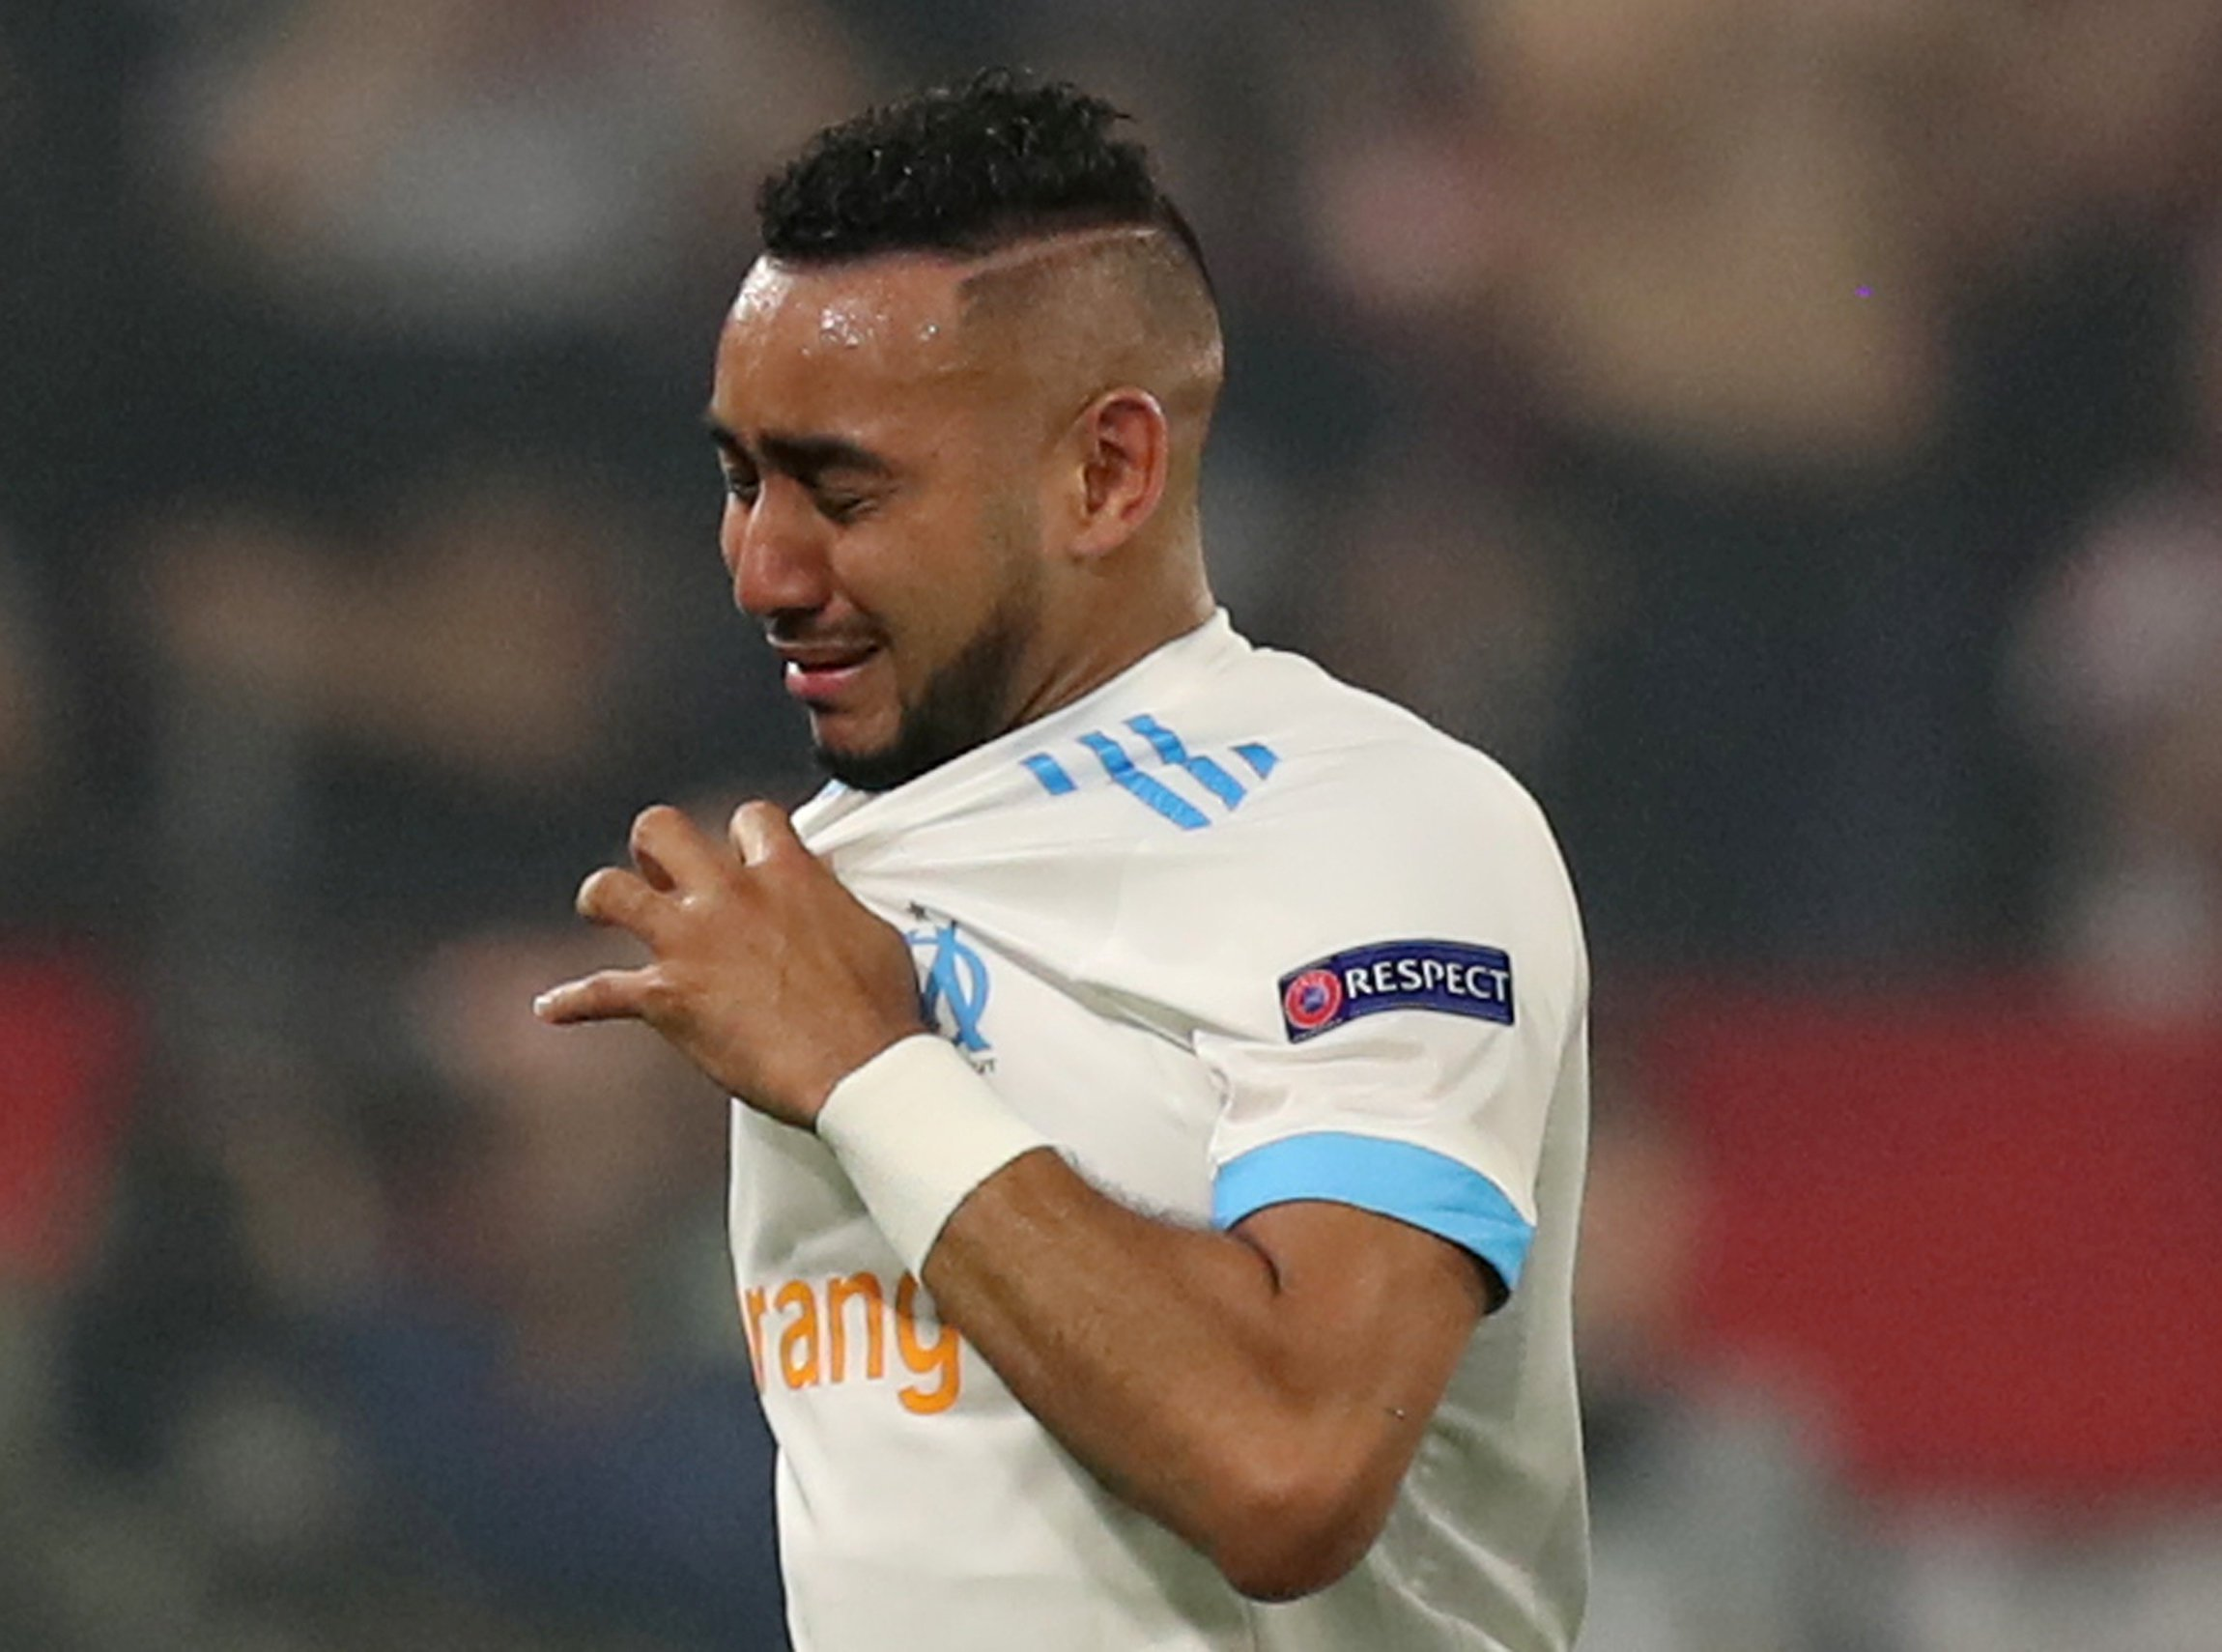 Dimitri Payet in tears as injury in Europa League final damages World Cup hopes